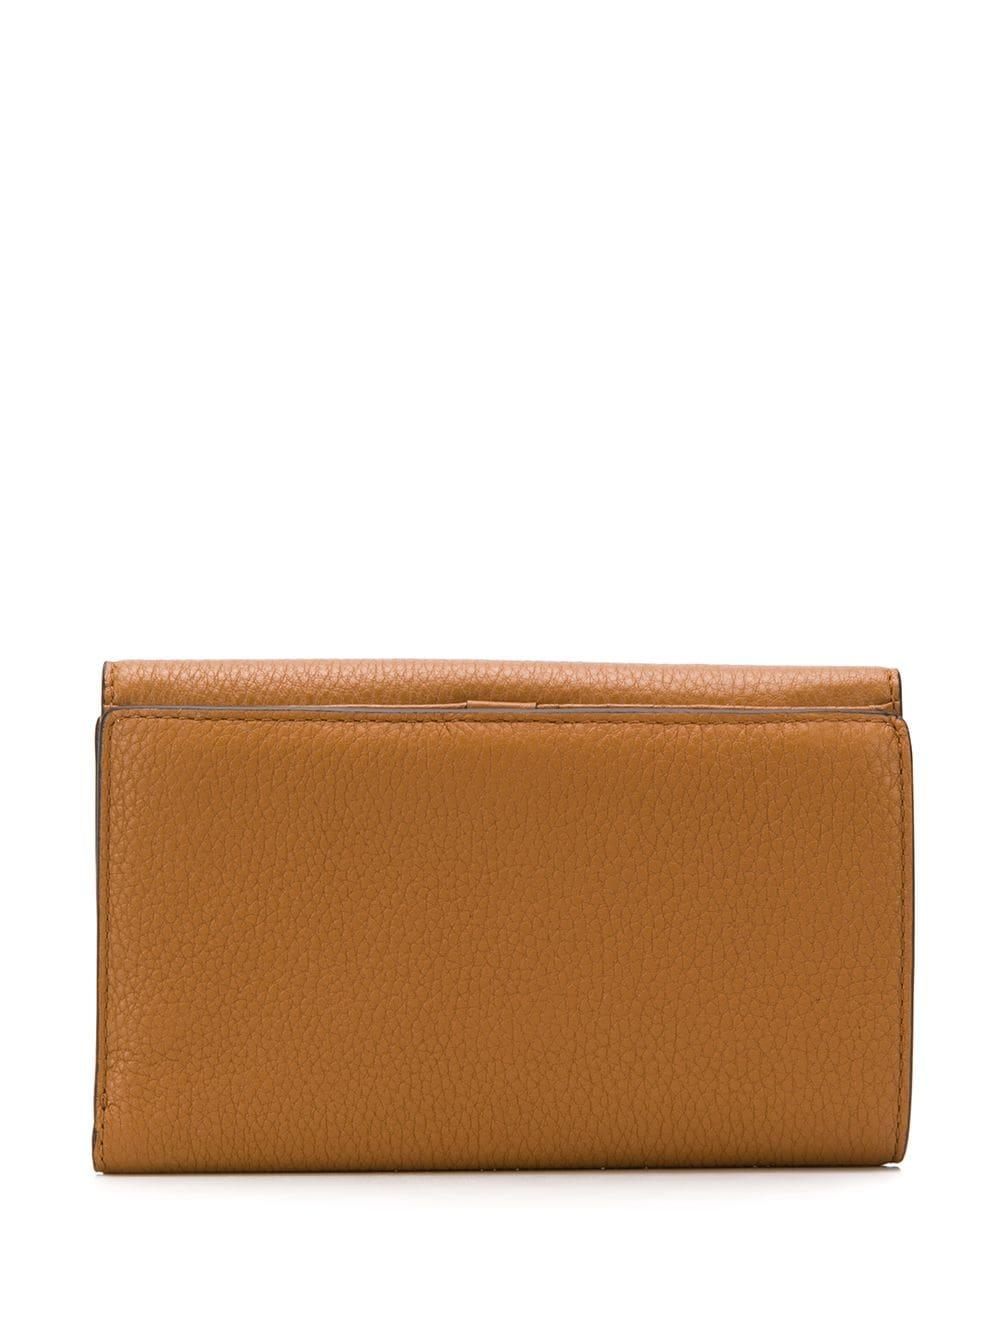 73b0130ab173 Lyst - MICHAEL Michael Kors Logo Trifold Wallet in Brown for Men